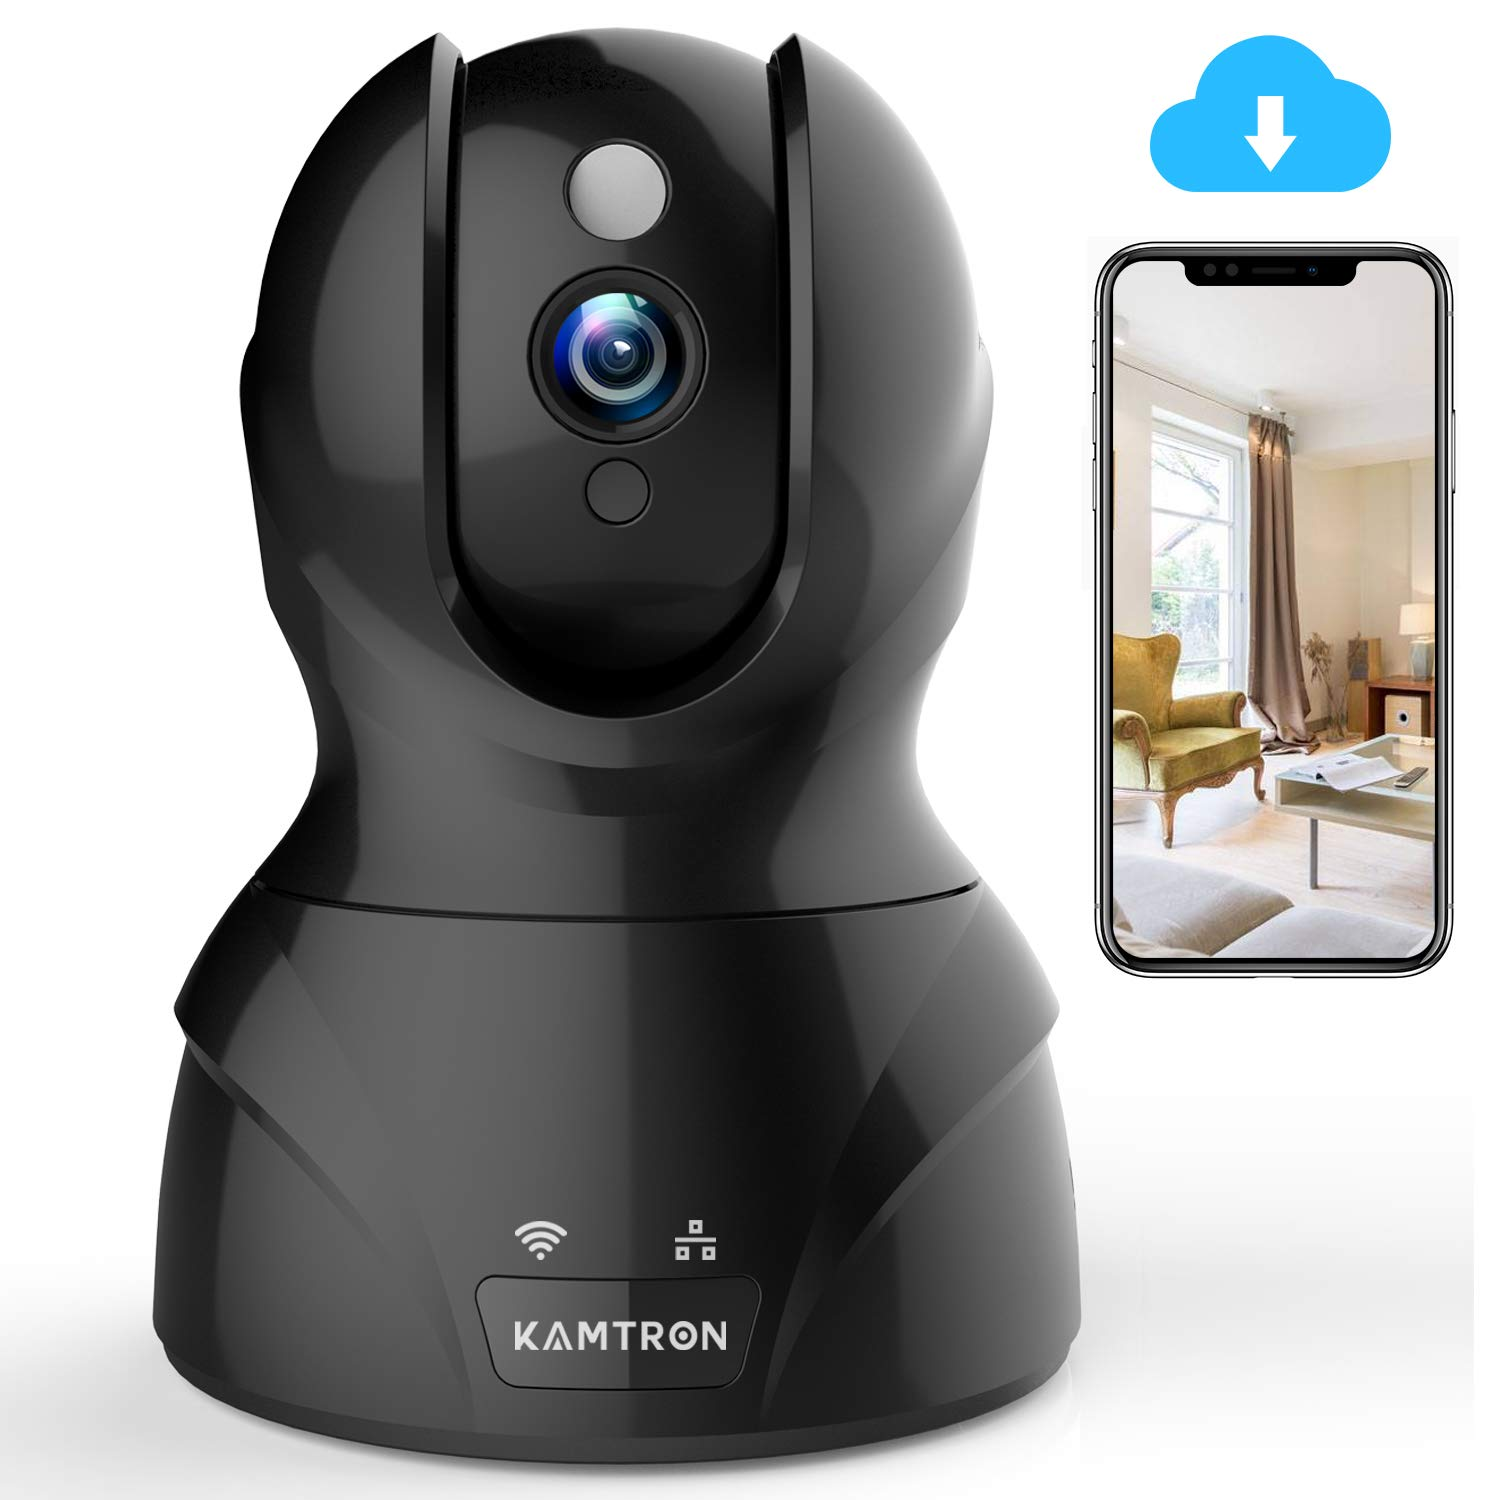 Wireless Security Camera with Two-way Audio - KAMTRON 1080P HD WiFi Security Surveillance IP Camera Home Baby Monitor with Motion Detection Night Vision, Black by KAMTRON